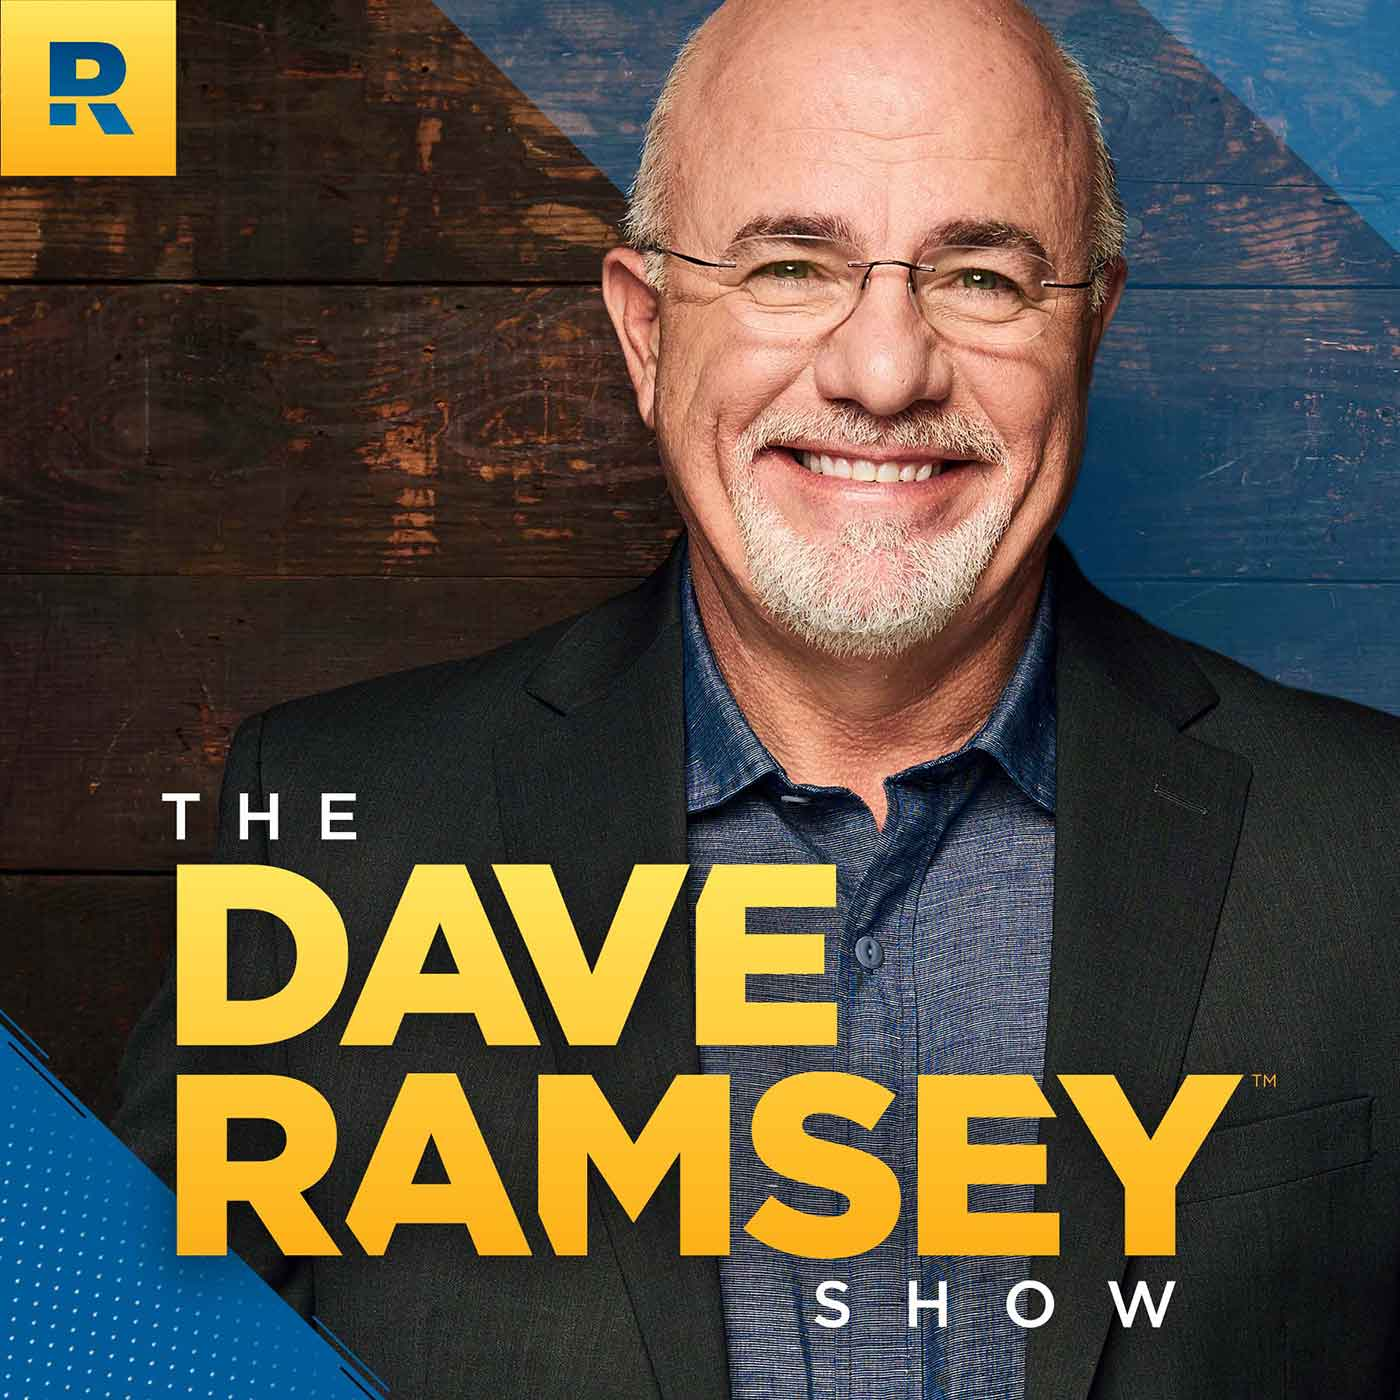 The Dave Ramsey Show podcast